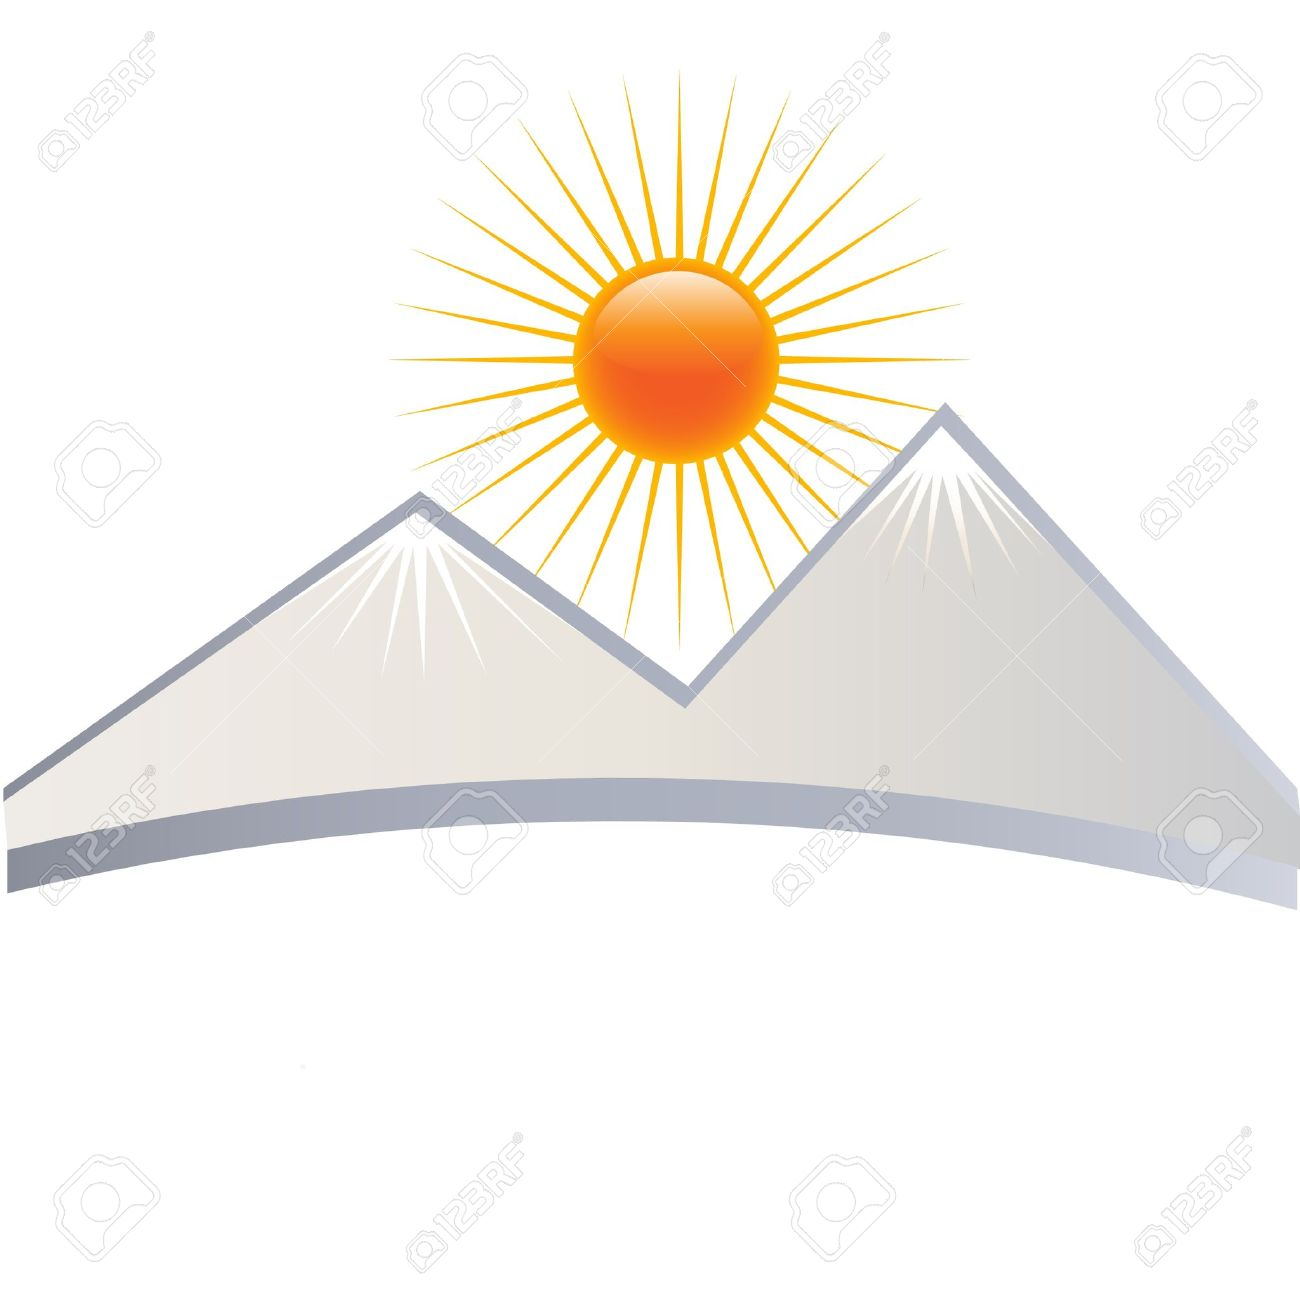 Mountain clipart with a sun behind it jpg library library Free Sun Mountain Cliparts, Download Free Clip Art, Free ... jpg library library